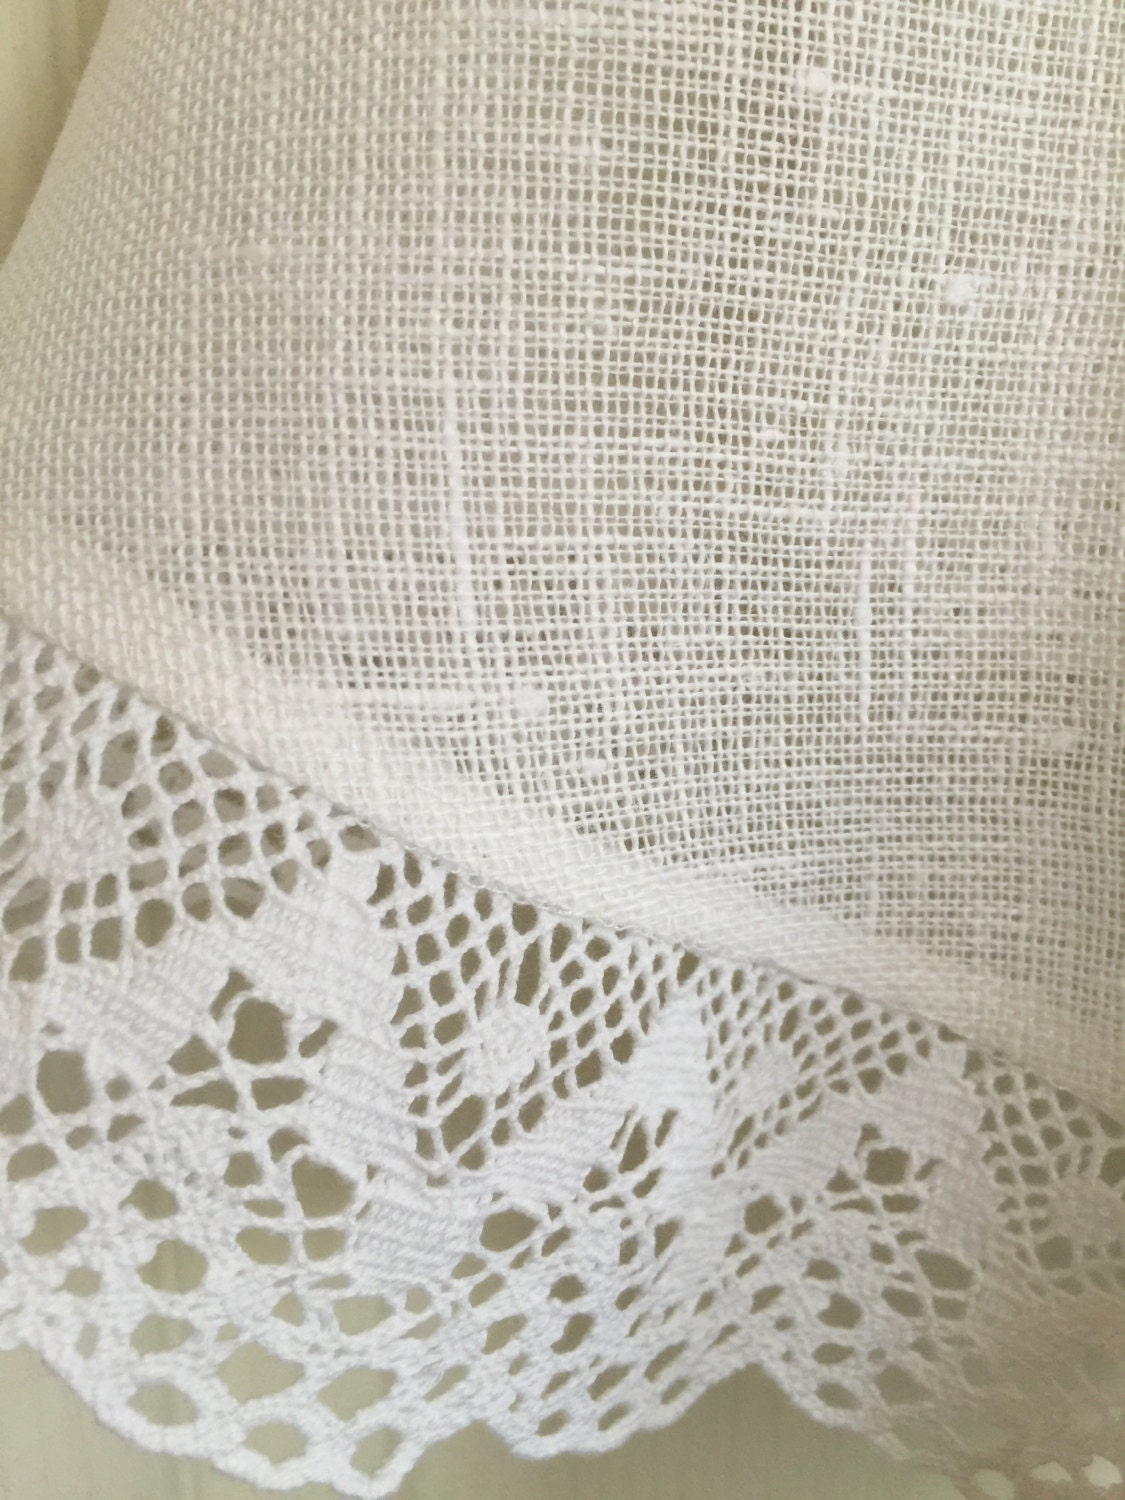 linen round tablecloth white lace by rokasdarbi on etsy. Black Bedroom Furniture Sets. Home Design Ideas